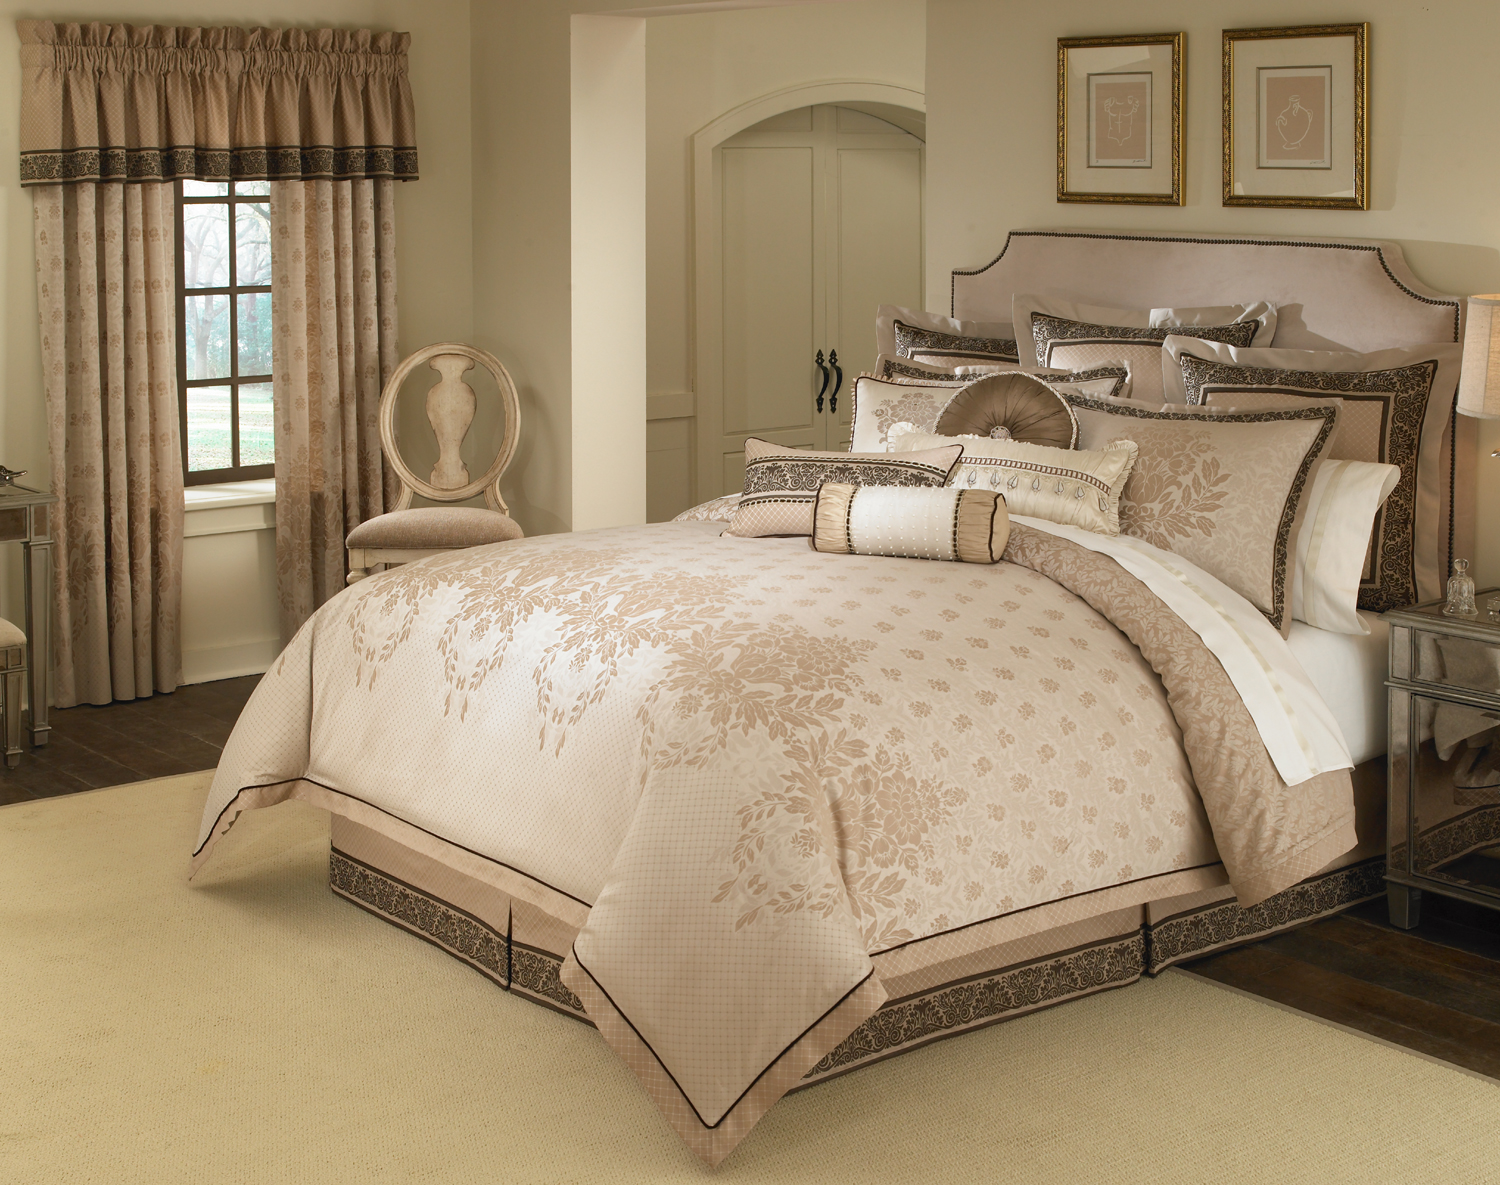 Aileen By Waterford Luxury Bedding Beddingsuperstore Com